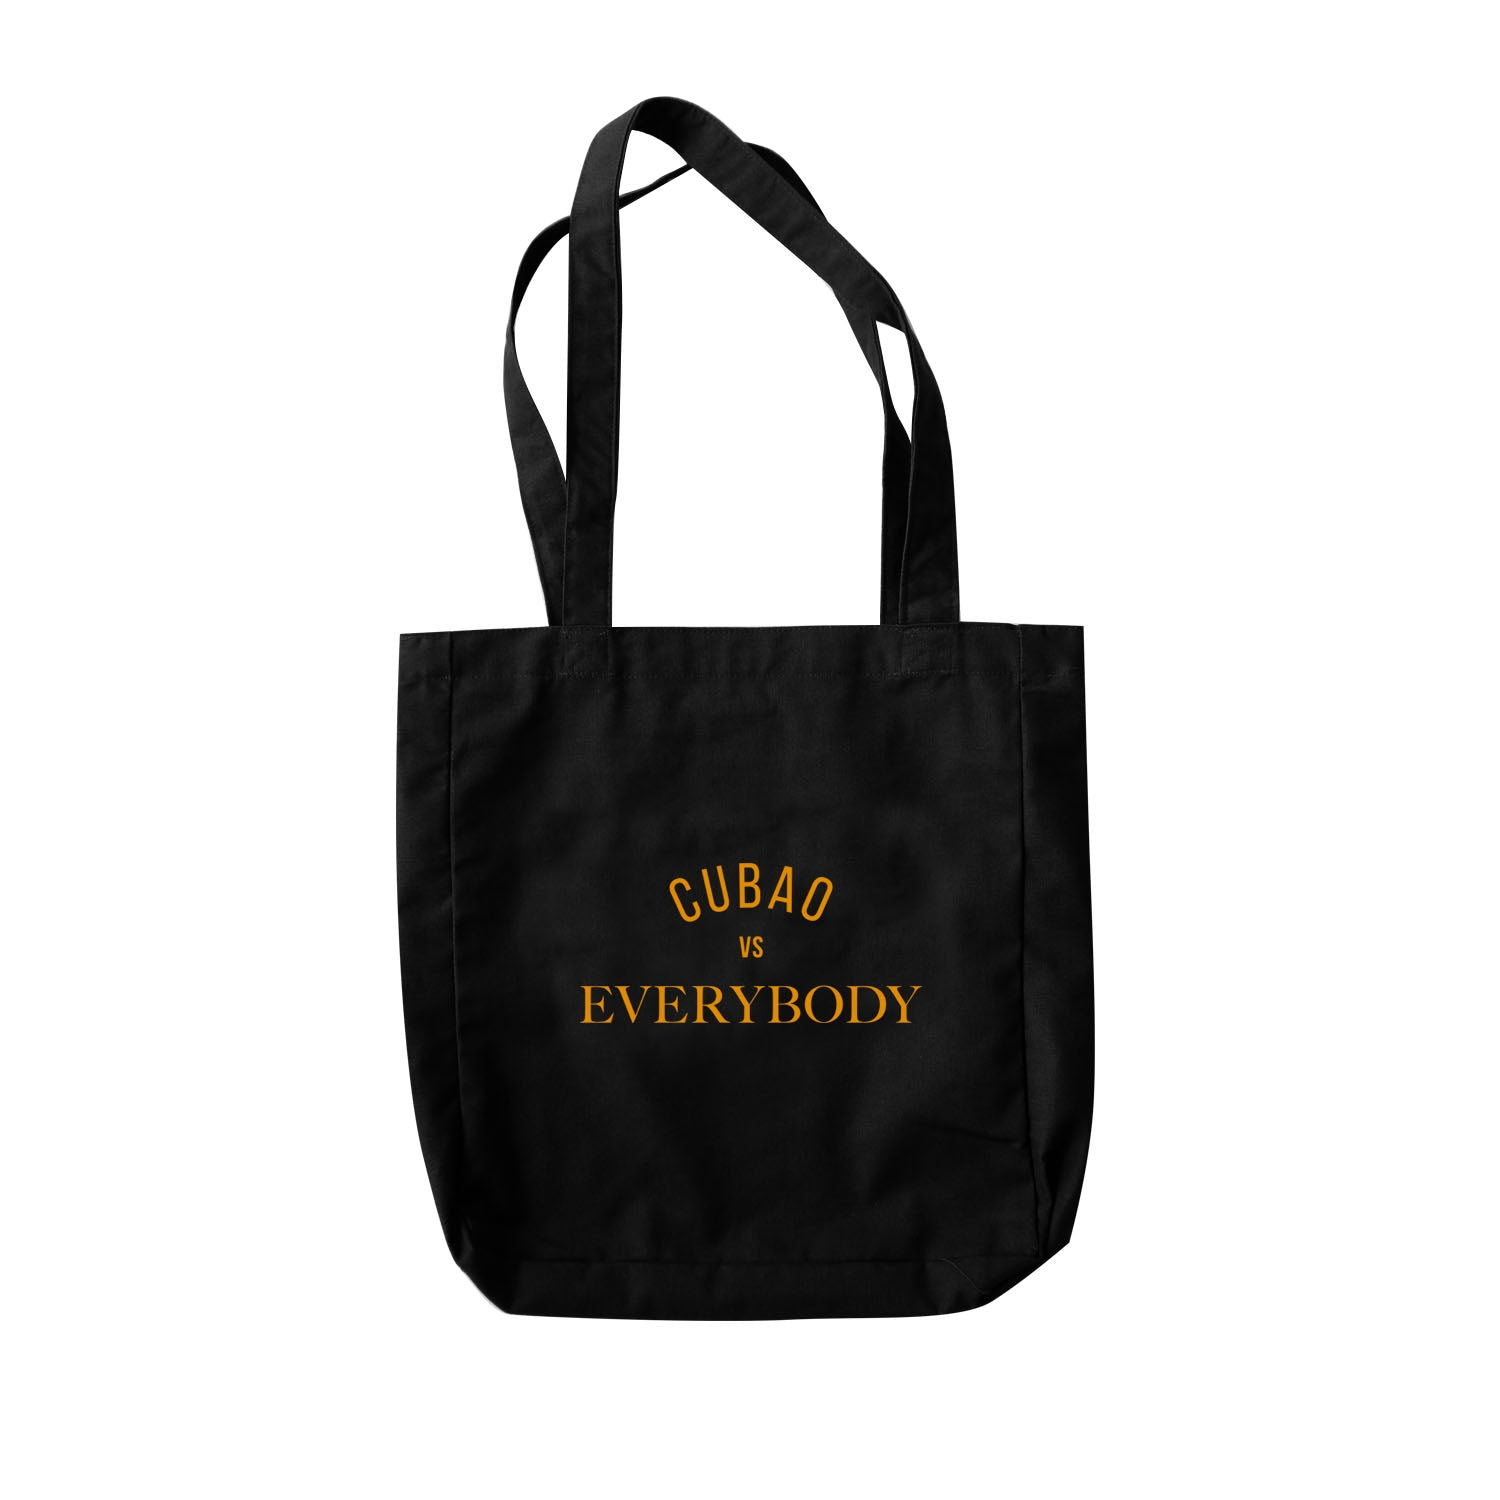 Cubao VS Everybody (Tote)